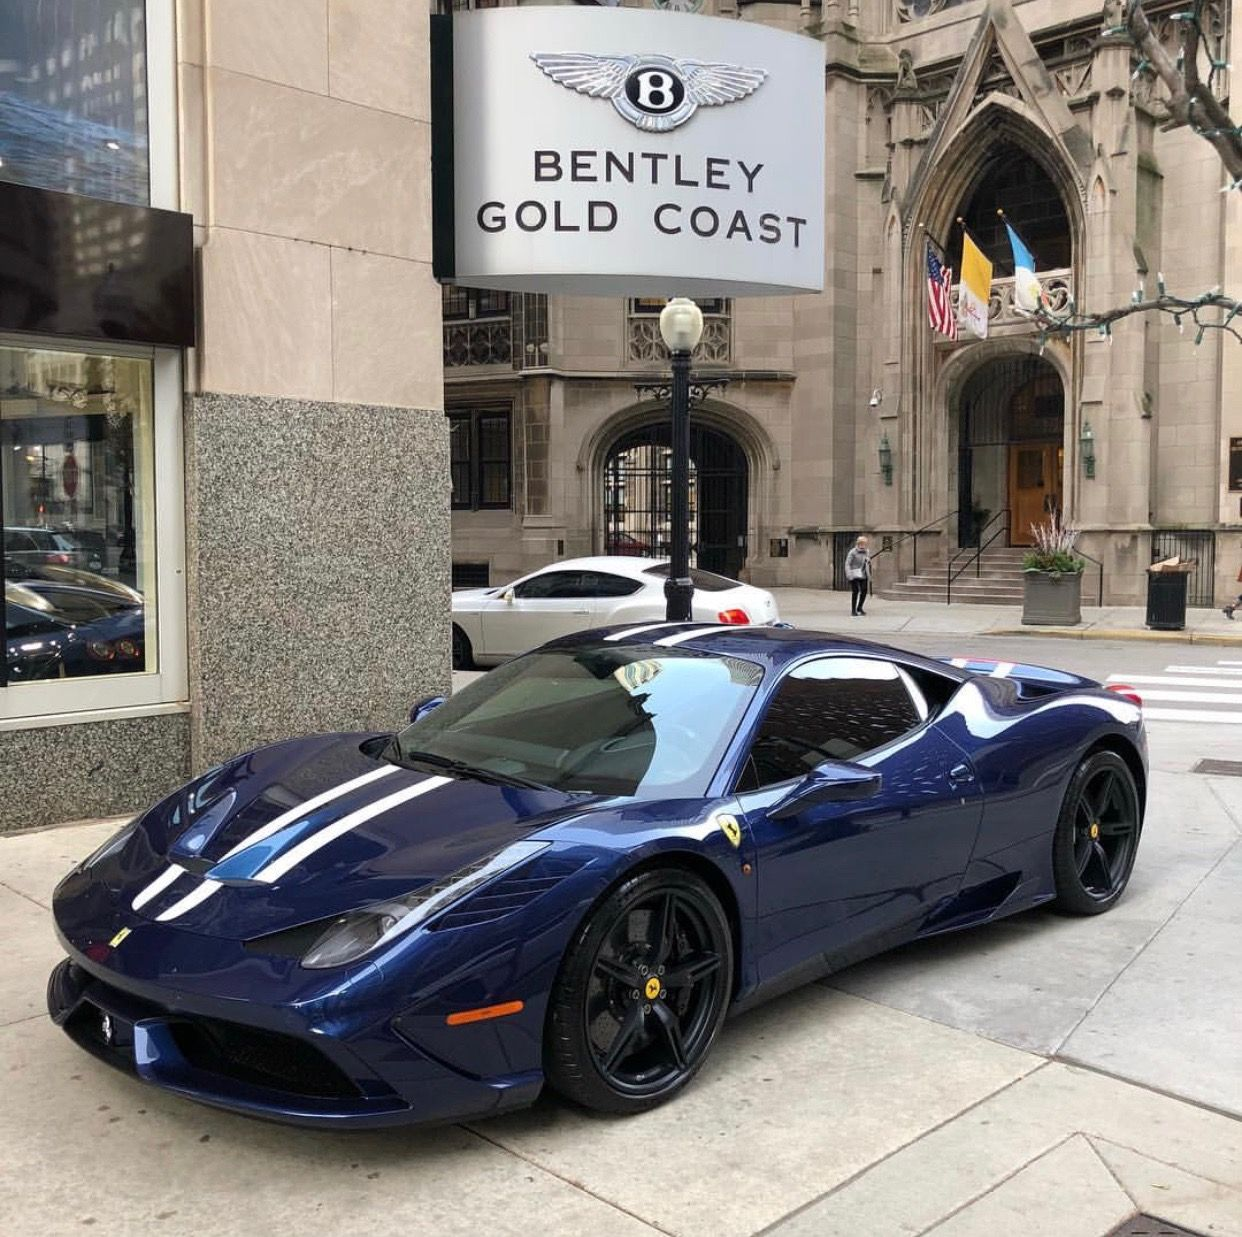 Ferrari 458 Speciale Painted In Blu Nart W Bianco Central Stripes Photo Taken By Goldcoastautogallery On Amazing Cars Wedding Ring Photography Ferrari 458